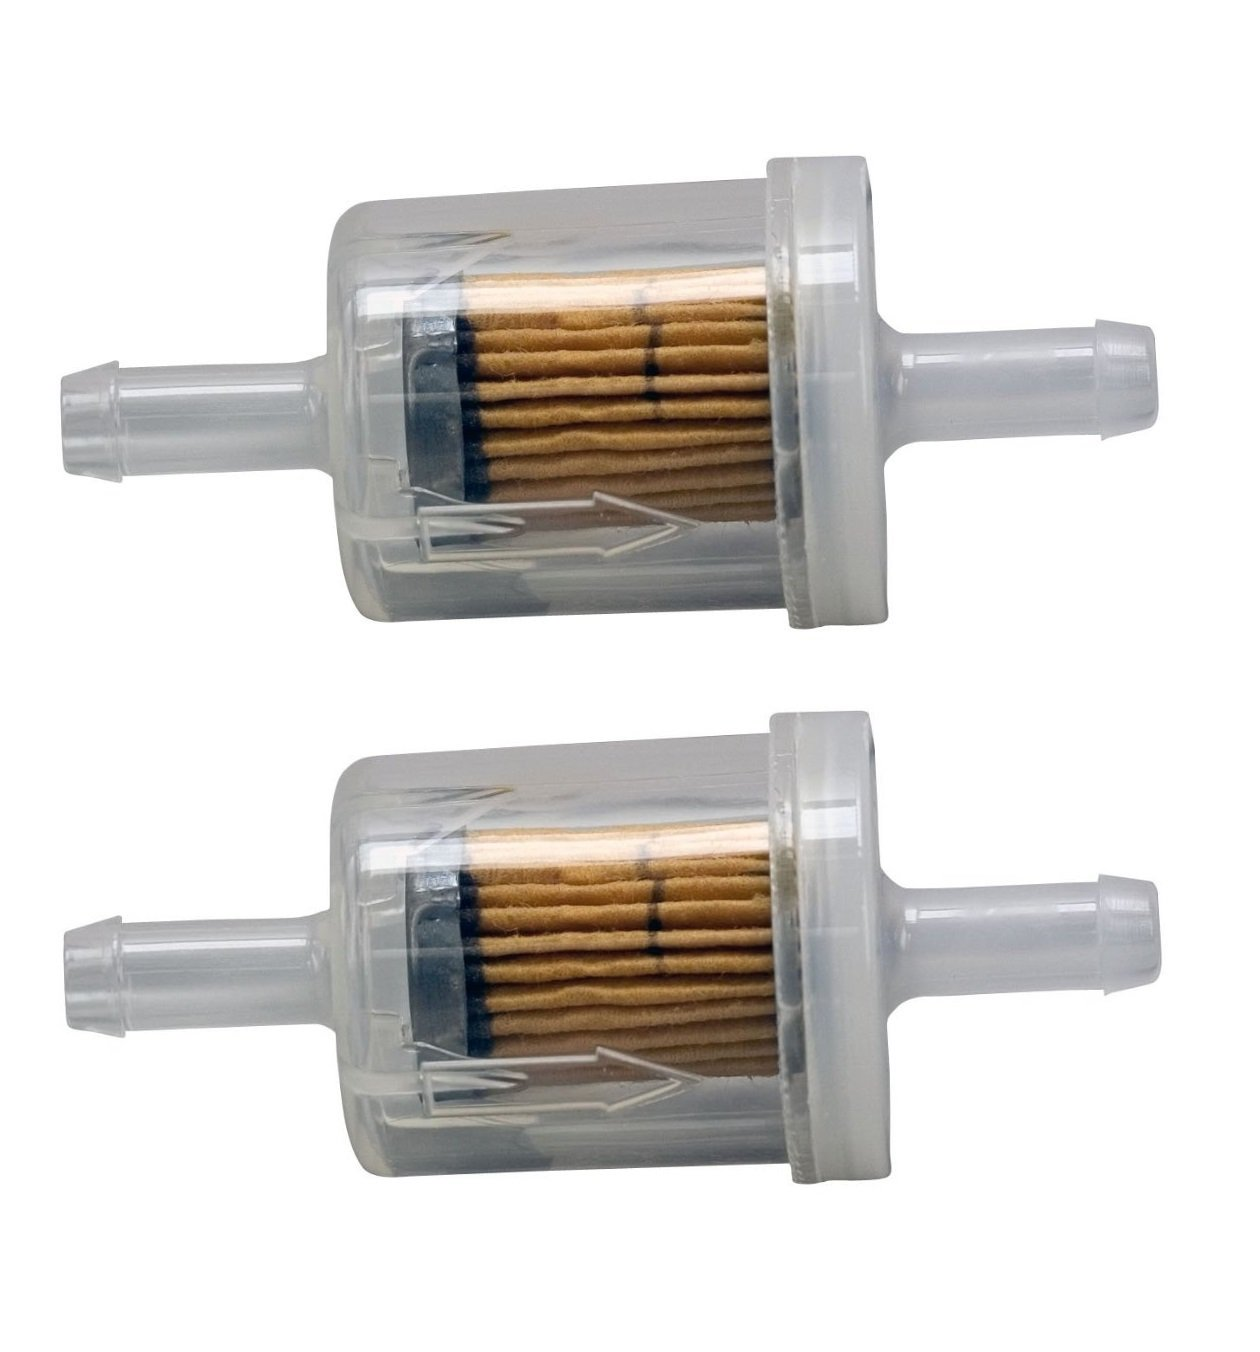 Briggs & Stratton Genuine OEM 691035 40 Micron Fuel Filter (2 Pack)